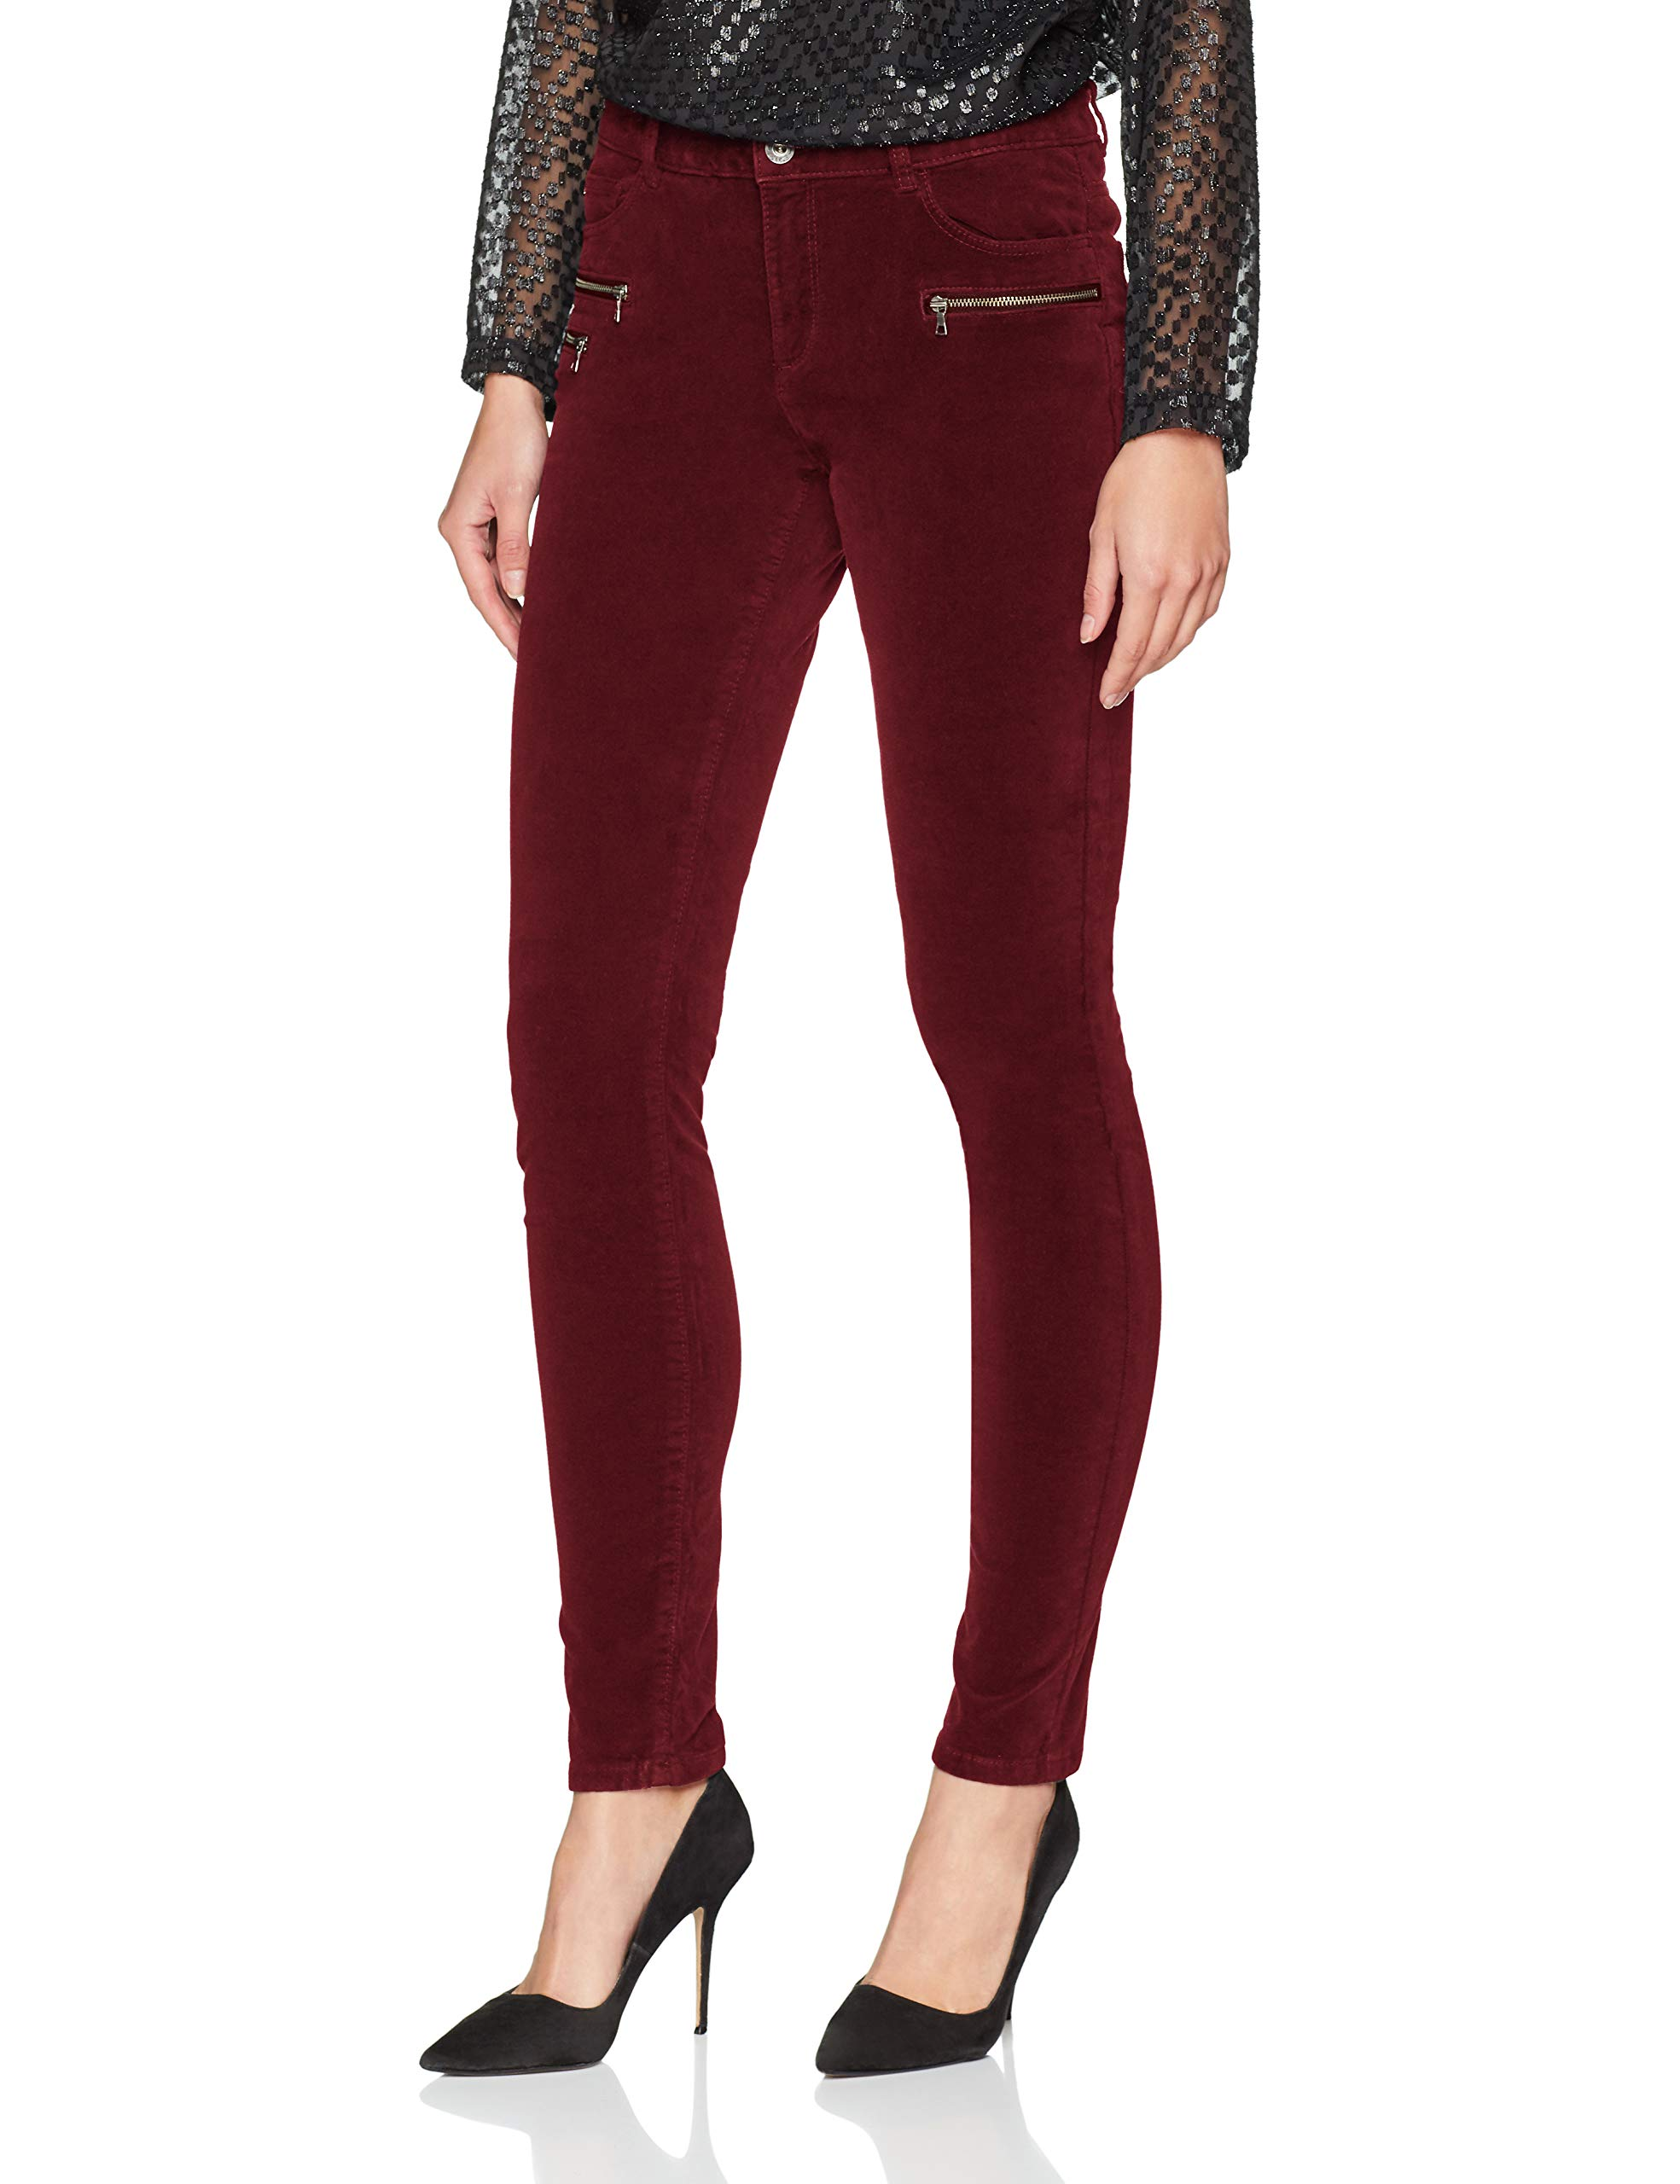 PantalonRougebordeaux l32taille 108ee1b020 32Femme Fabricant38 Esprit 600W38 Red vNmO08nw